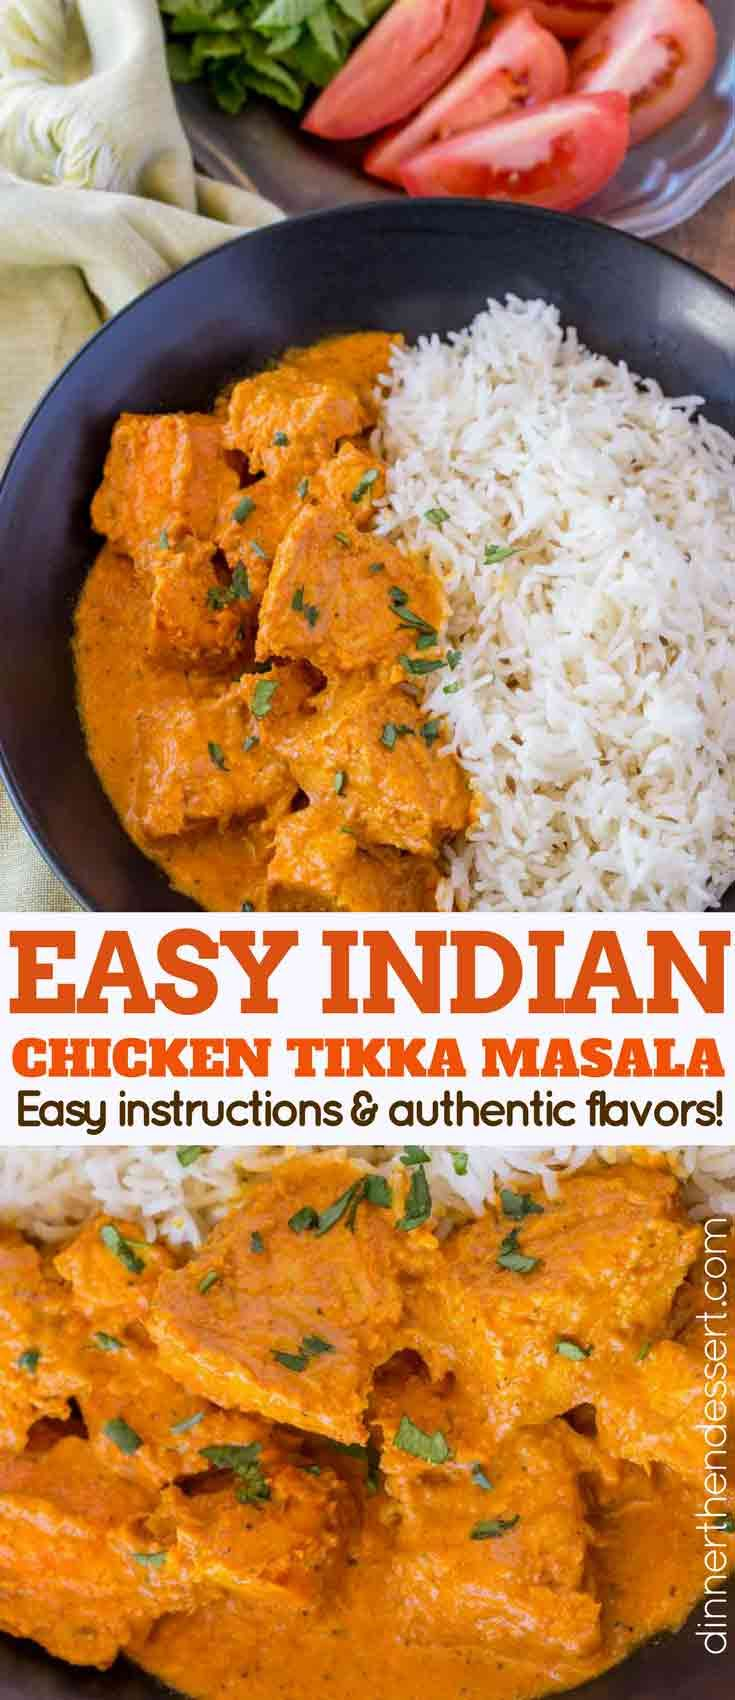 Chicken Tikka Masala is a delicious creamy tomato sauce based Indian recipe made with white meat chicken and plenty of bold spices including garlic, ginger, cumin and coriander.